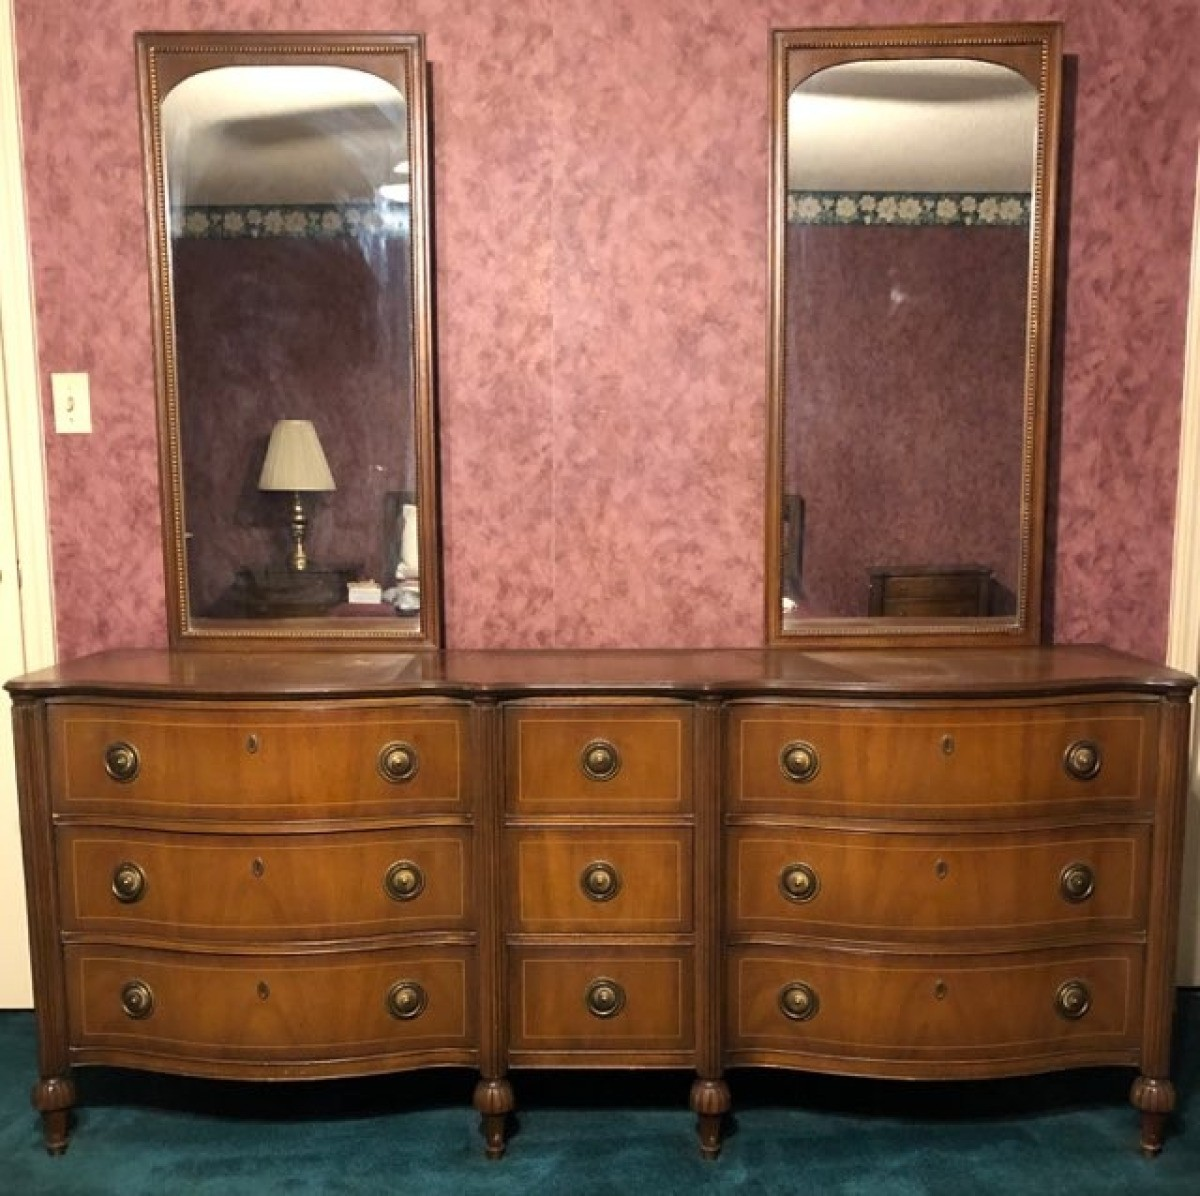 Value of American of Martinsville Bedroom Furniture | ThriftyFun